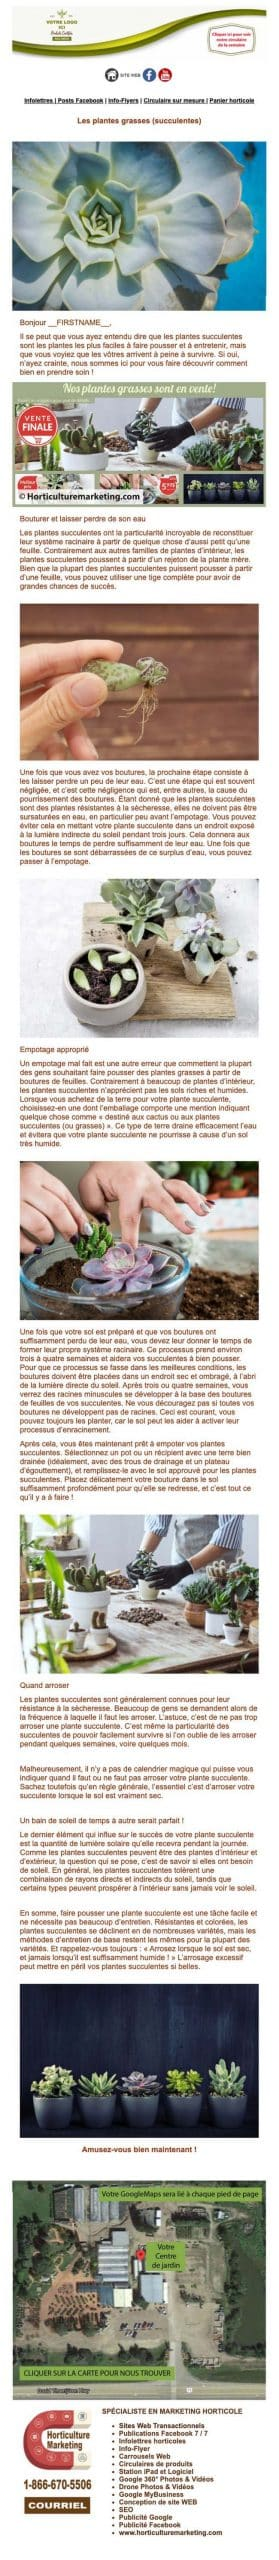 Infolettre horticole